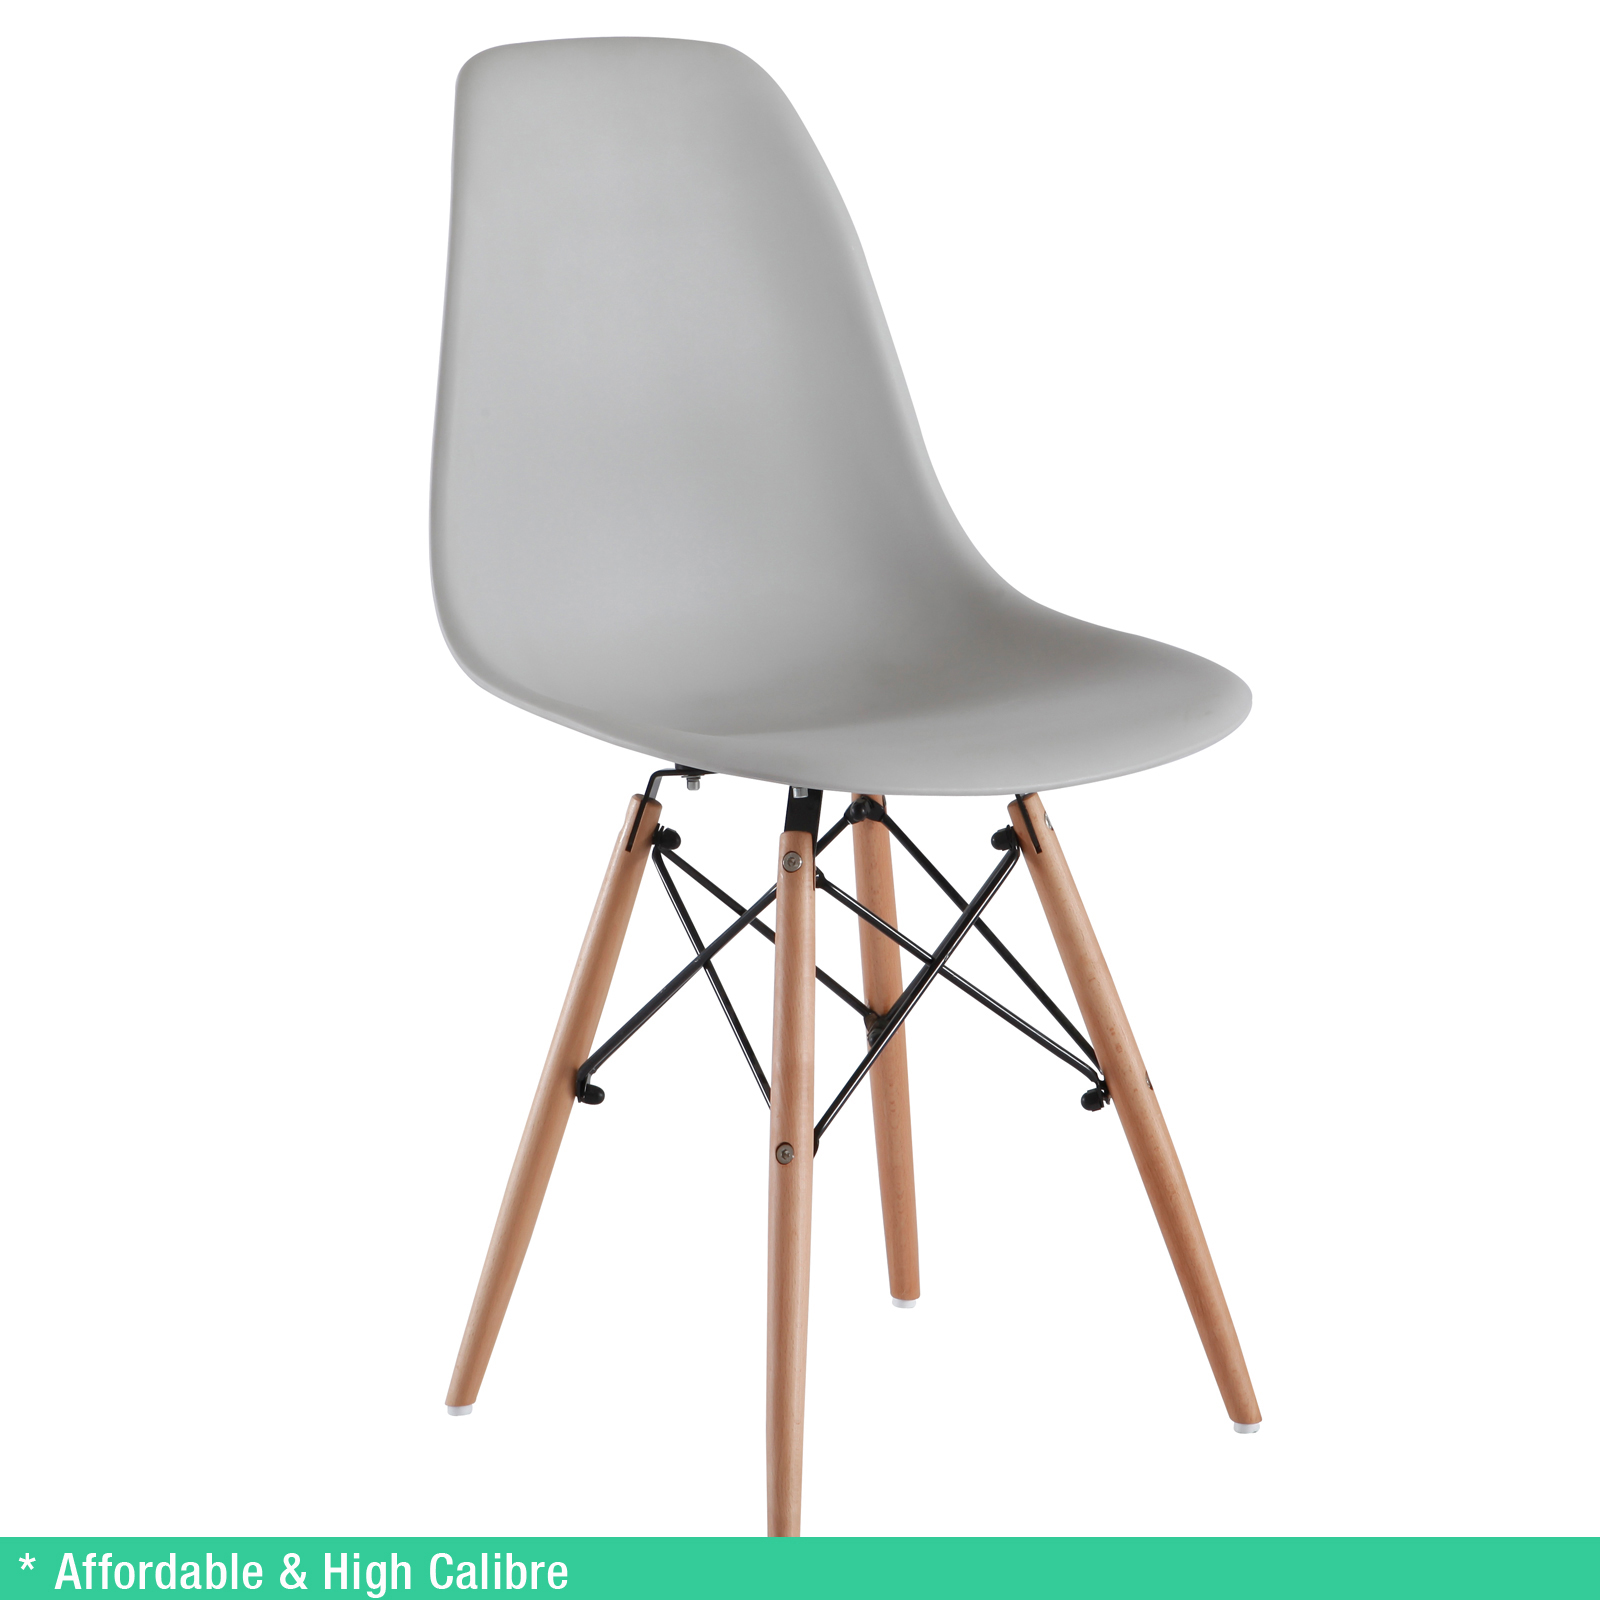 12 X Retro Replica Eames Chick Dsw Dining Chairs Office  : Eames Chick Grey 01 from www.50han.com size 1600 x 1600 jpeg 379kB